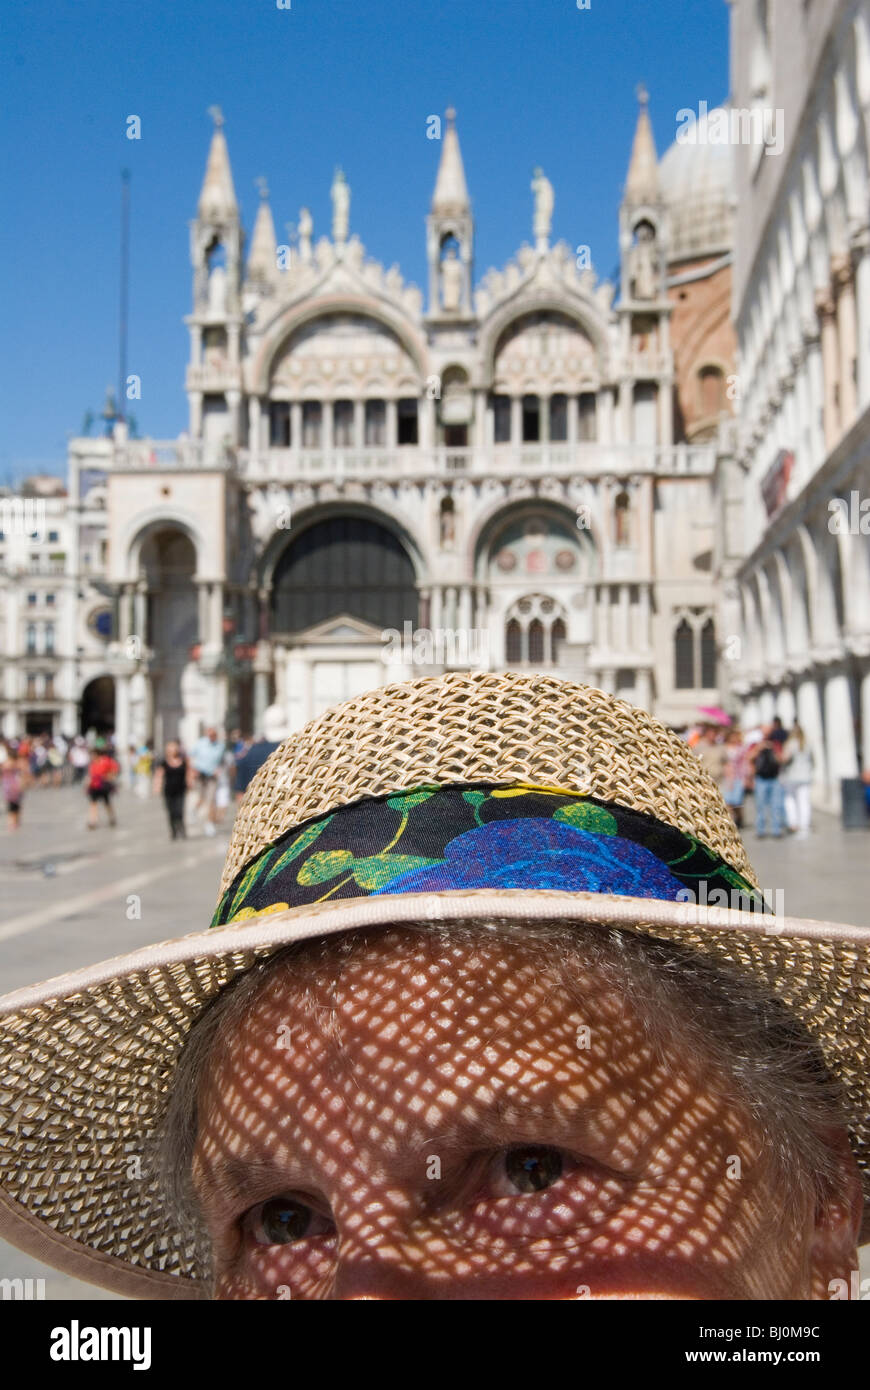 Venice Italy Woman tourist wearing straw hat St Marks Square. Piazza San Marco. Basilica San Marco in background. - Stock Image